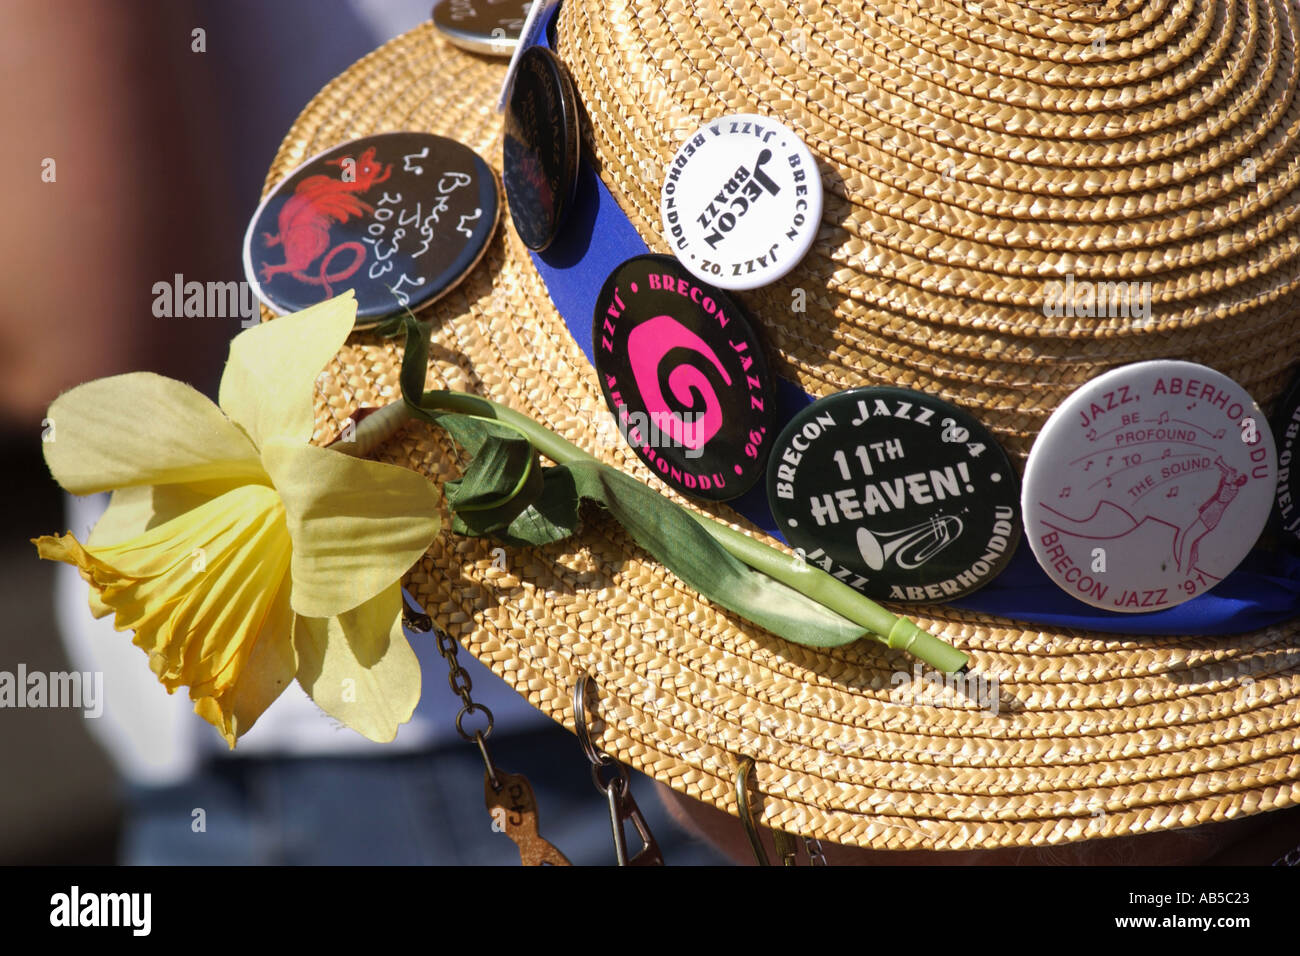 Jazz  fan wearing straw boater with badges and daffodil at the annual Brecon Jazz Festival Powys Mid Wales UK - Stock Image